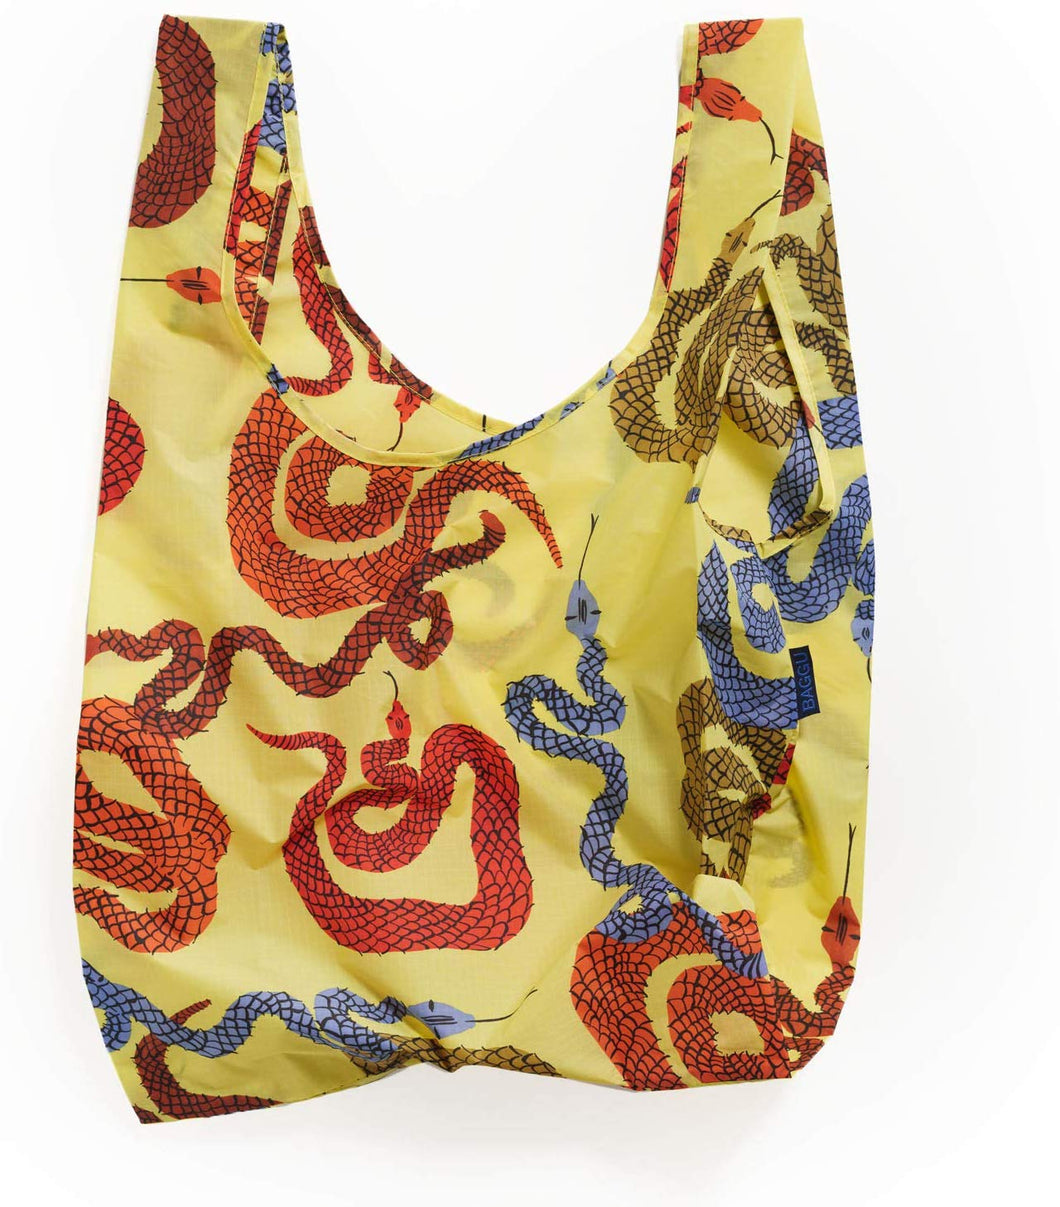 BAGGU Standard Reusable Shopping Bag, Ripstop Nylon Grocery Tote or Lunch Bag, Yellow Snakes